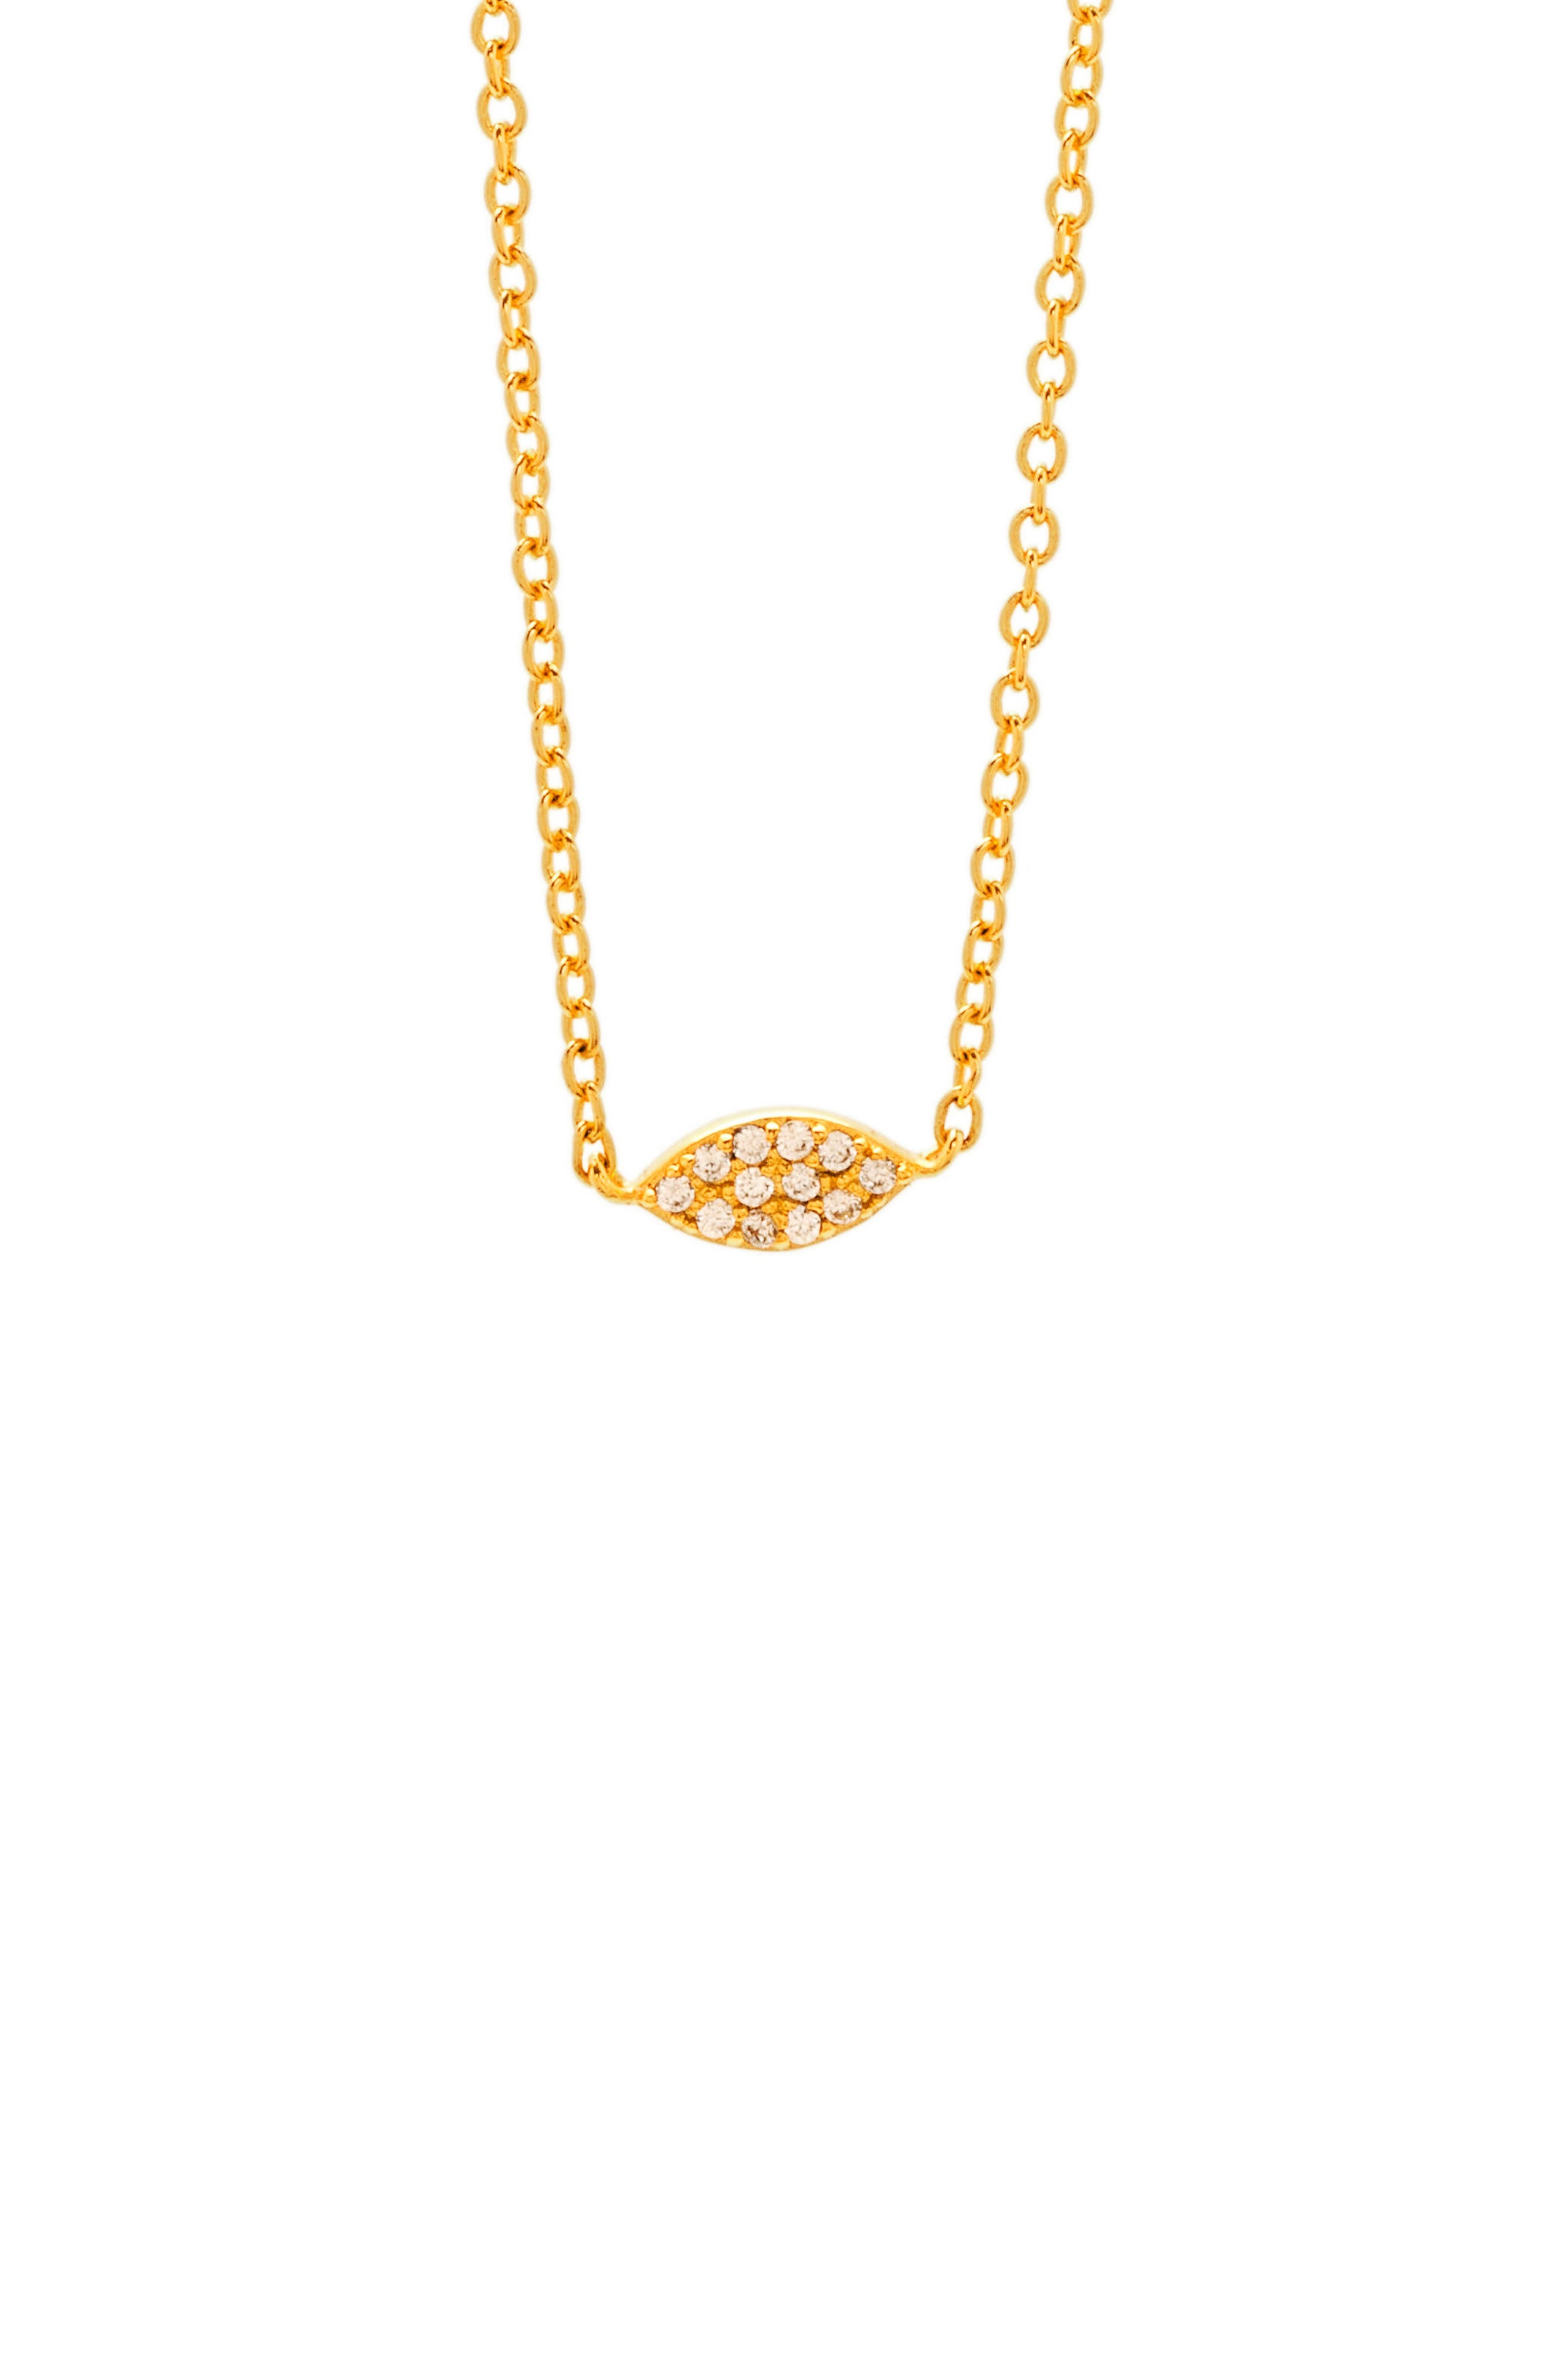 Main Image - gorjana Shimmer Marquee Pendant Necklace